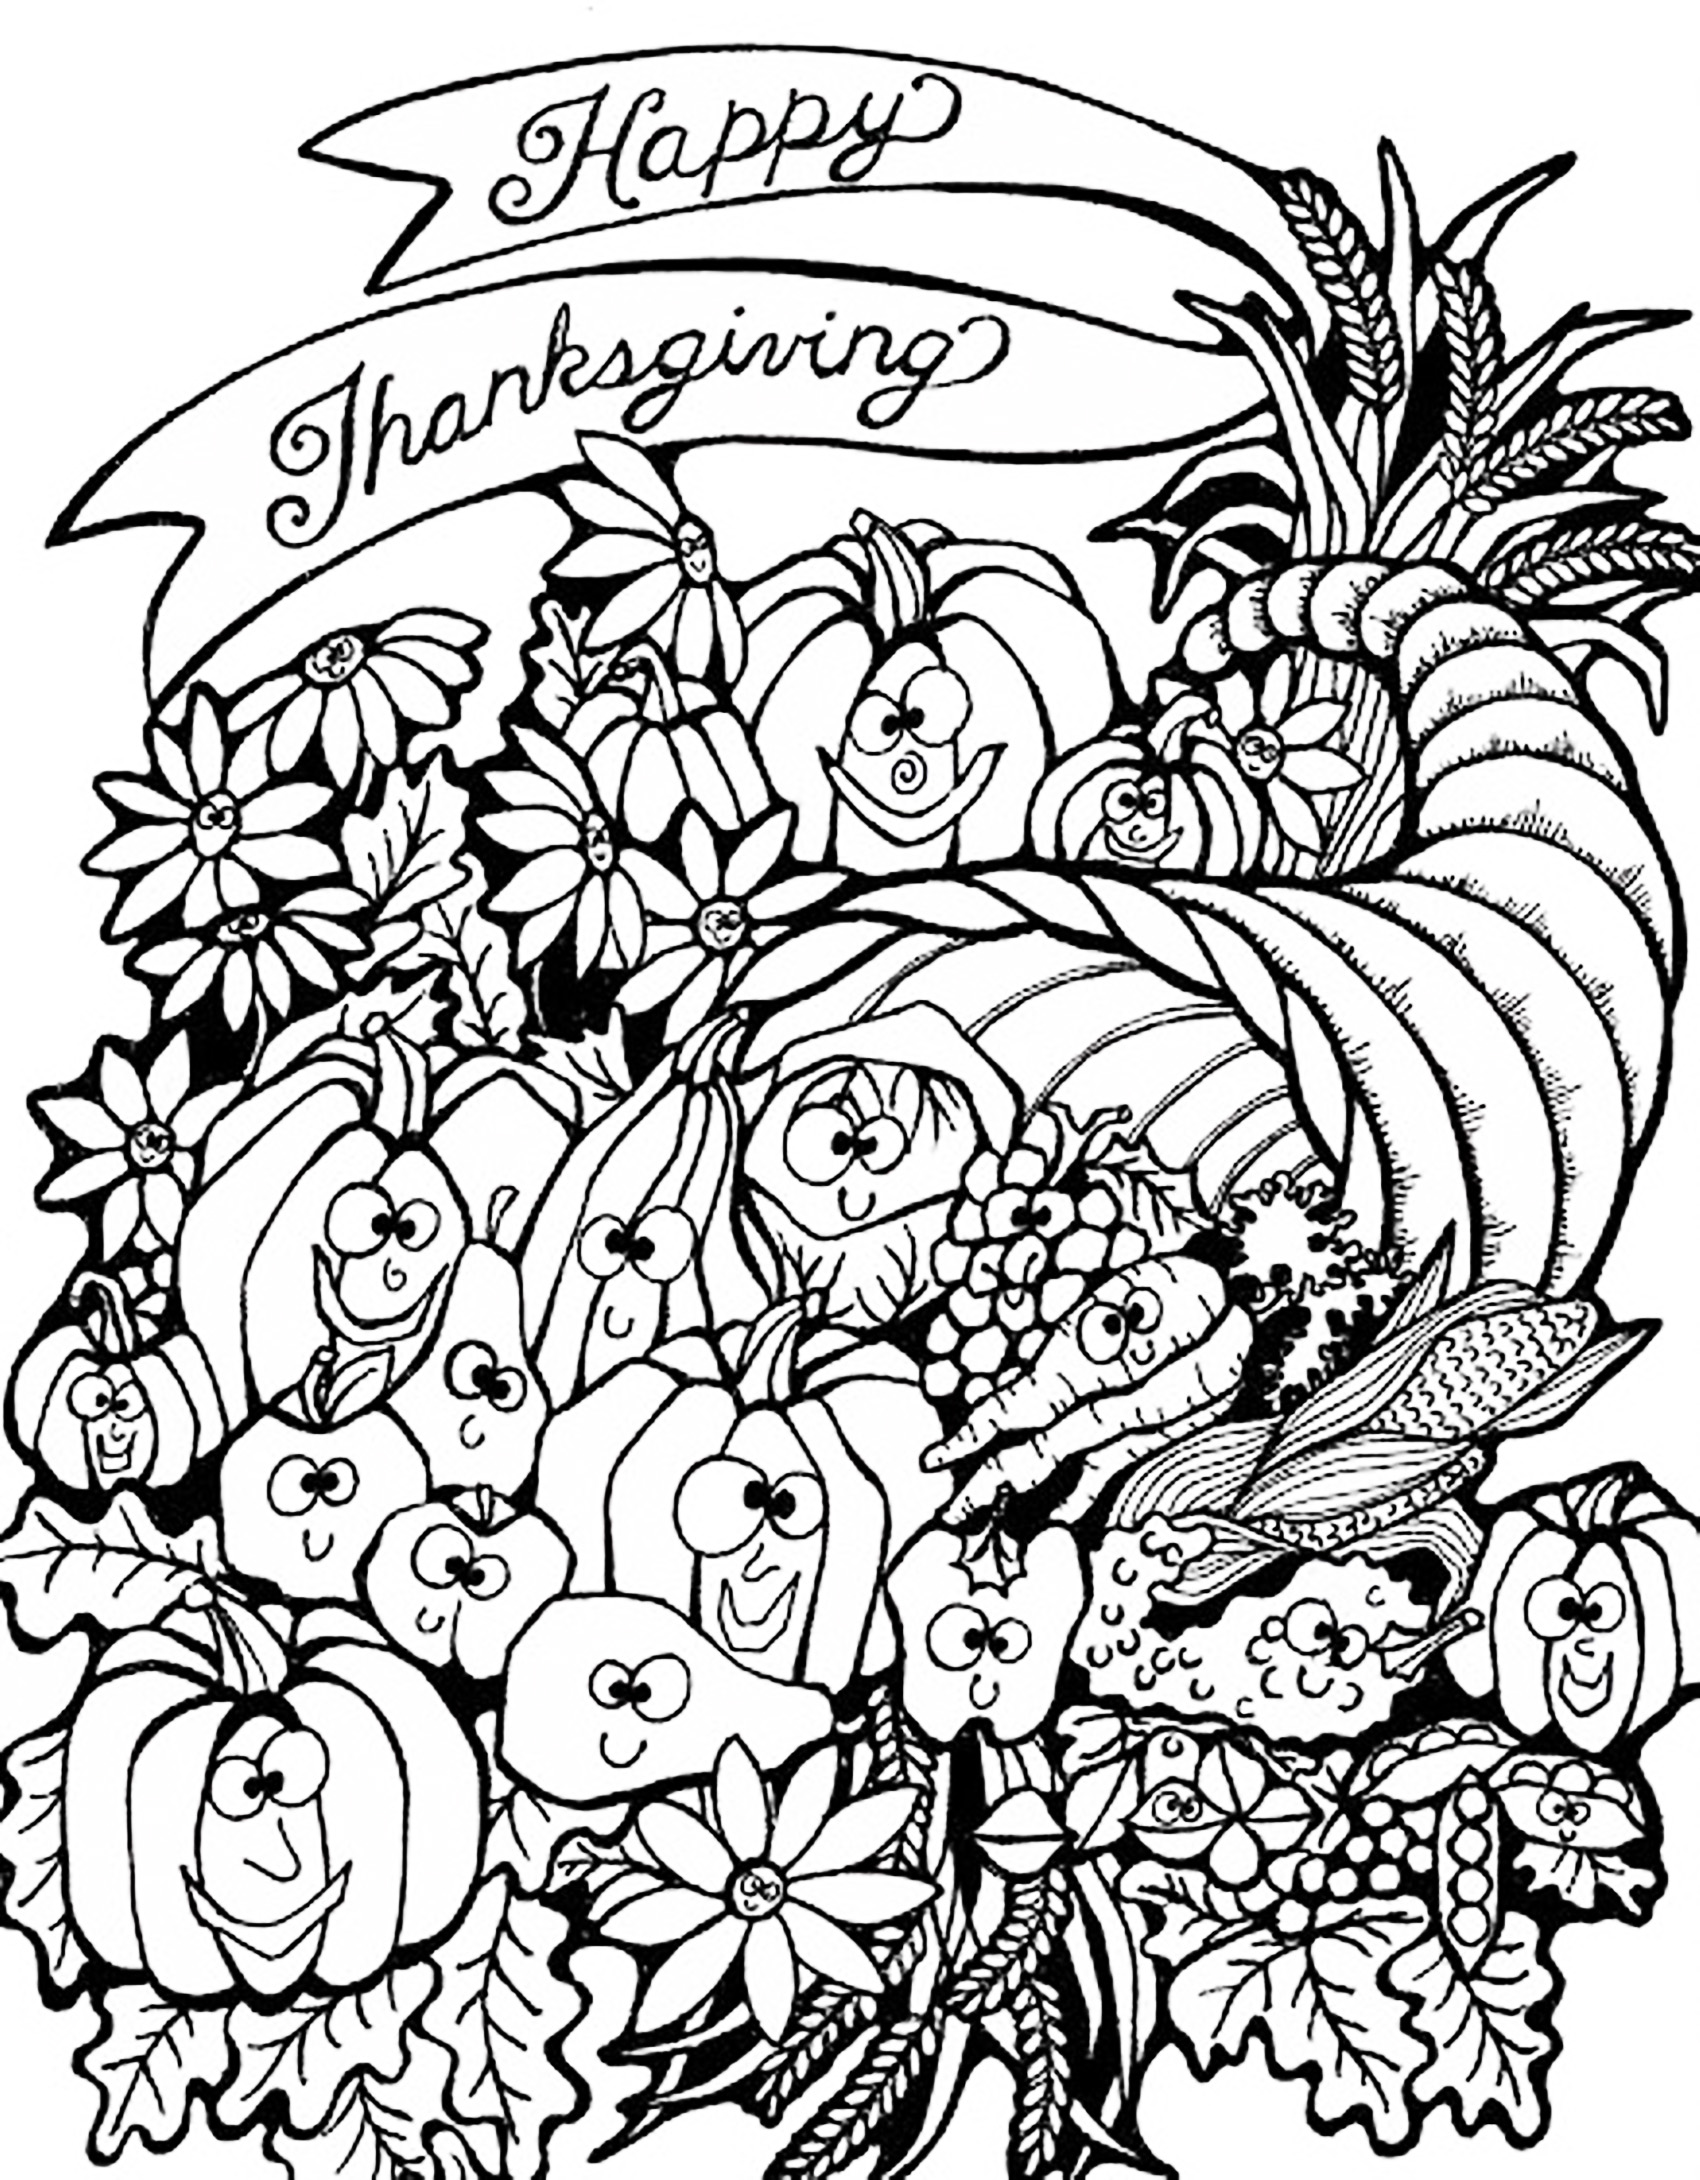 picture of cornucopia to color sweetness meditations thanksgiving coloring pages cornucopia cornucopia to color picture of